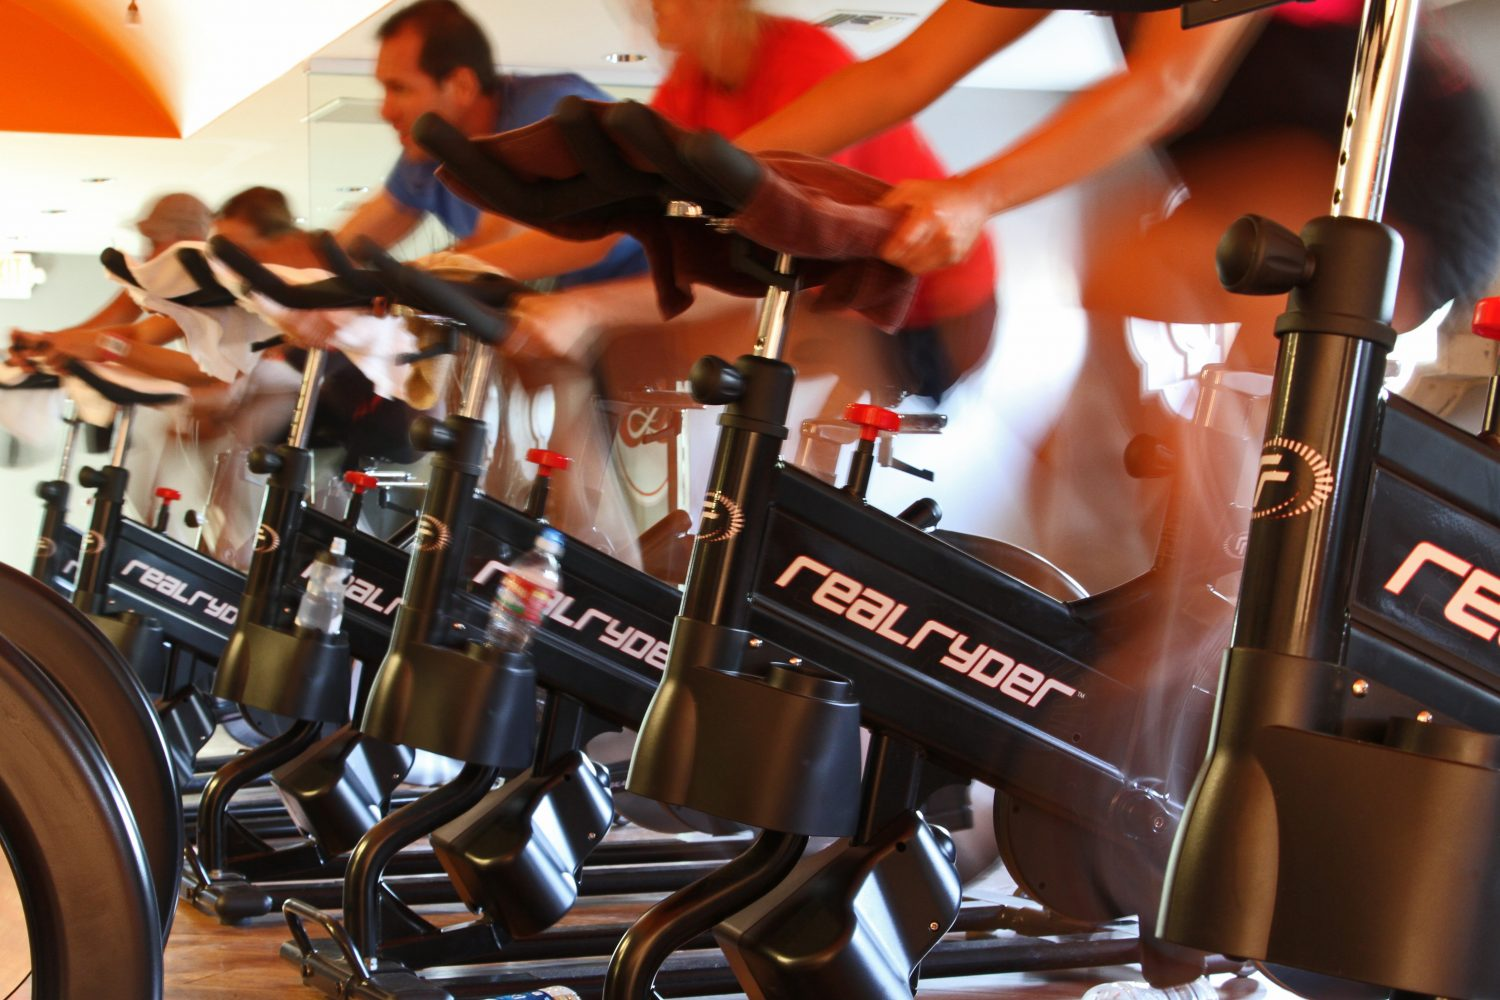 Best Place to Take a Spin Class